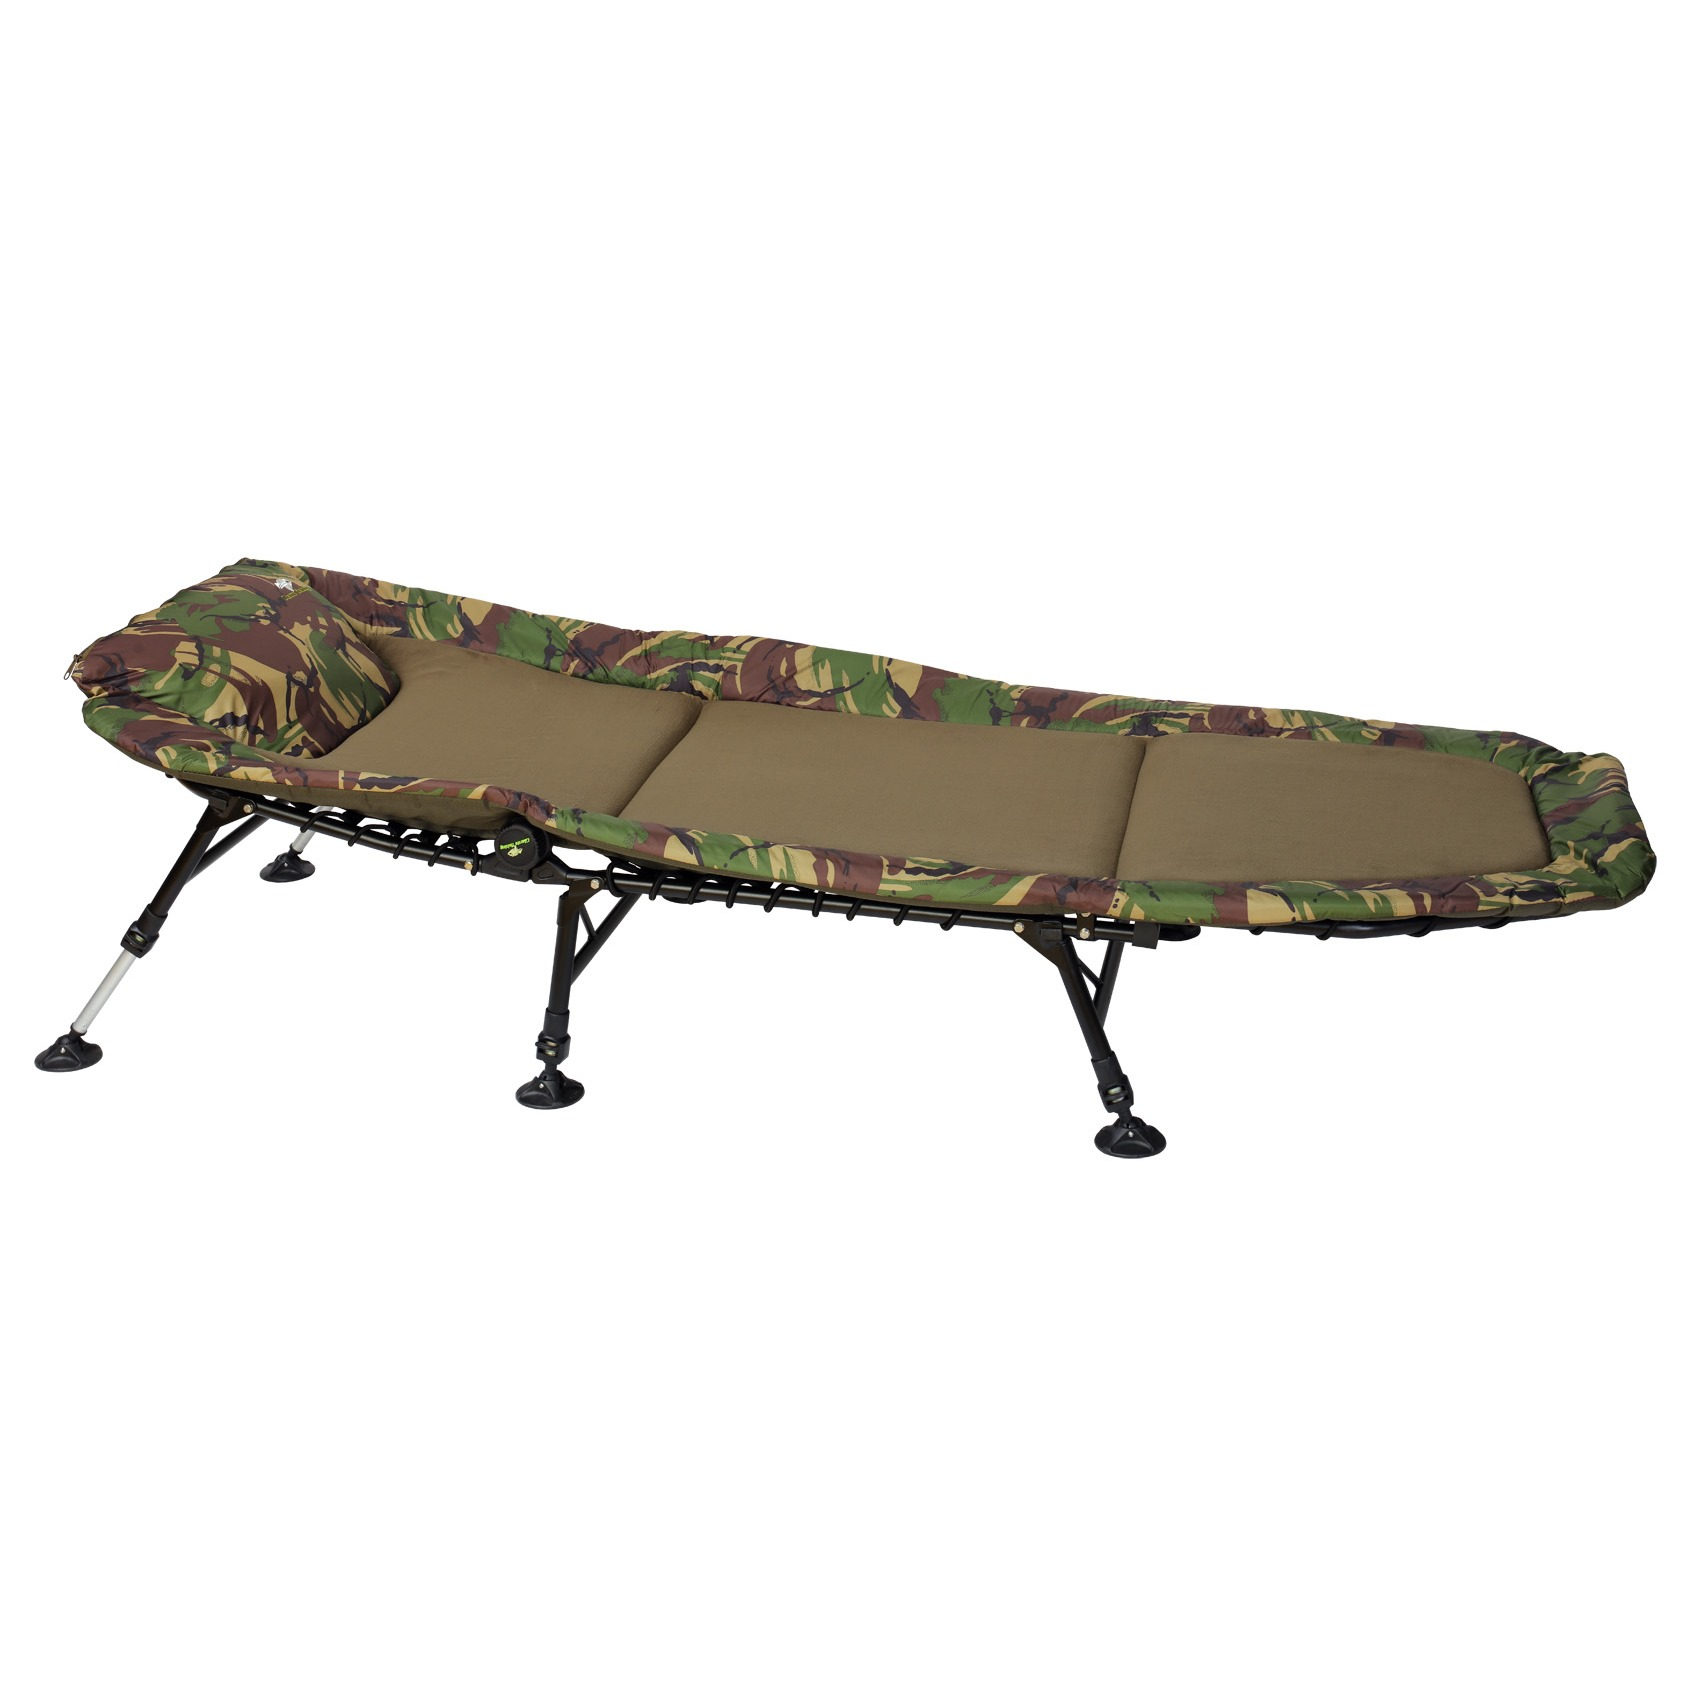 GIANTS FISHING - Lehátko Bedchair Fleece Camo 6leg